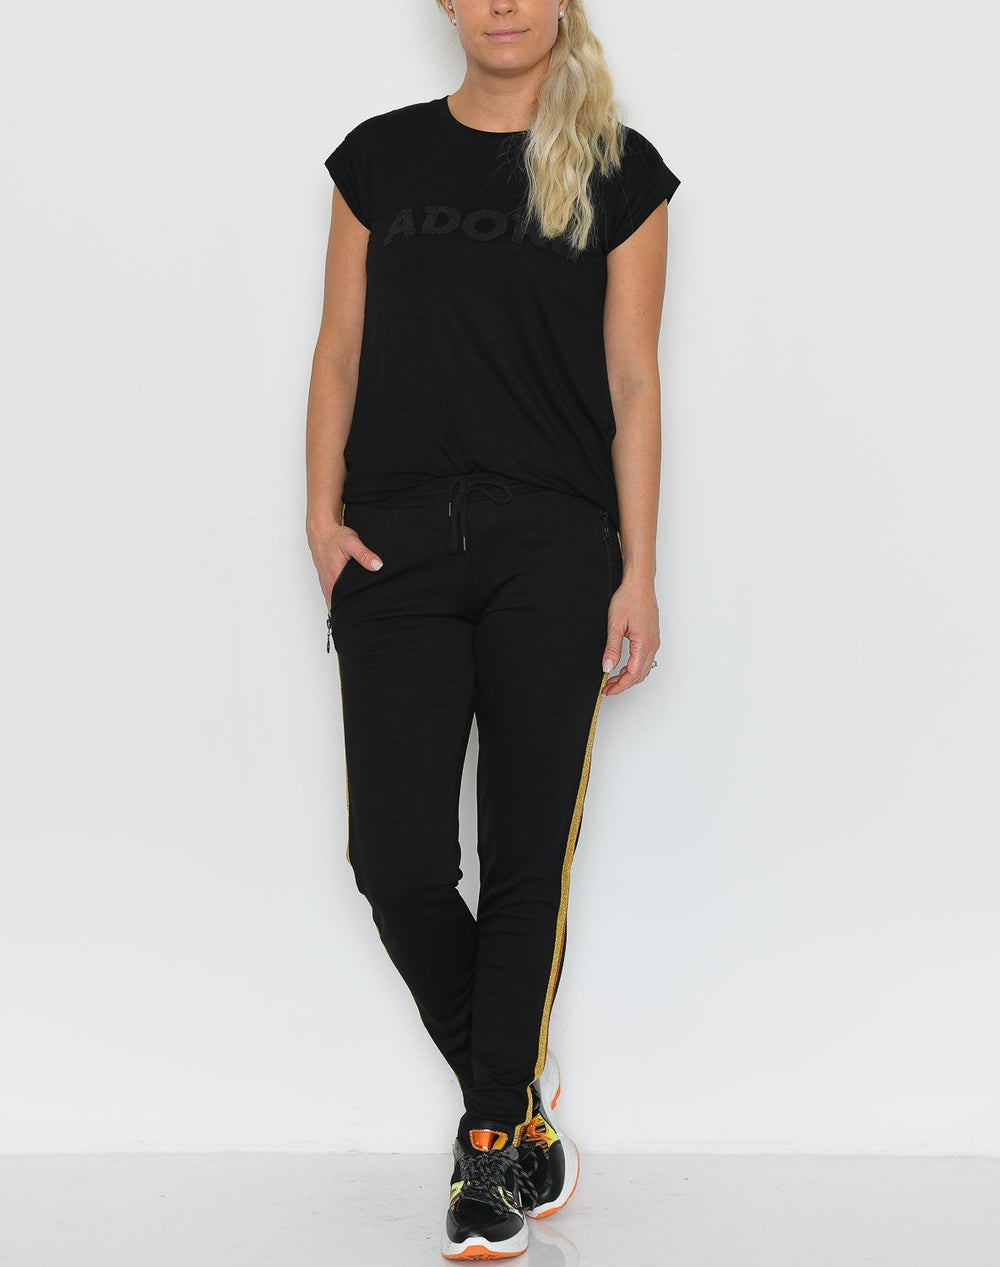 Ofelia Siri 2 pants black/kanel golden combi - Online-Mode